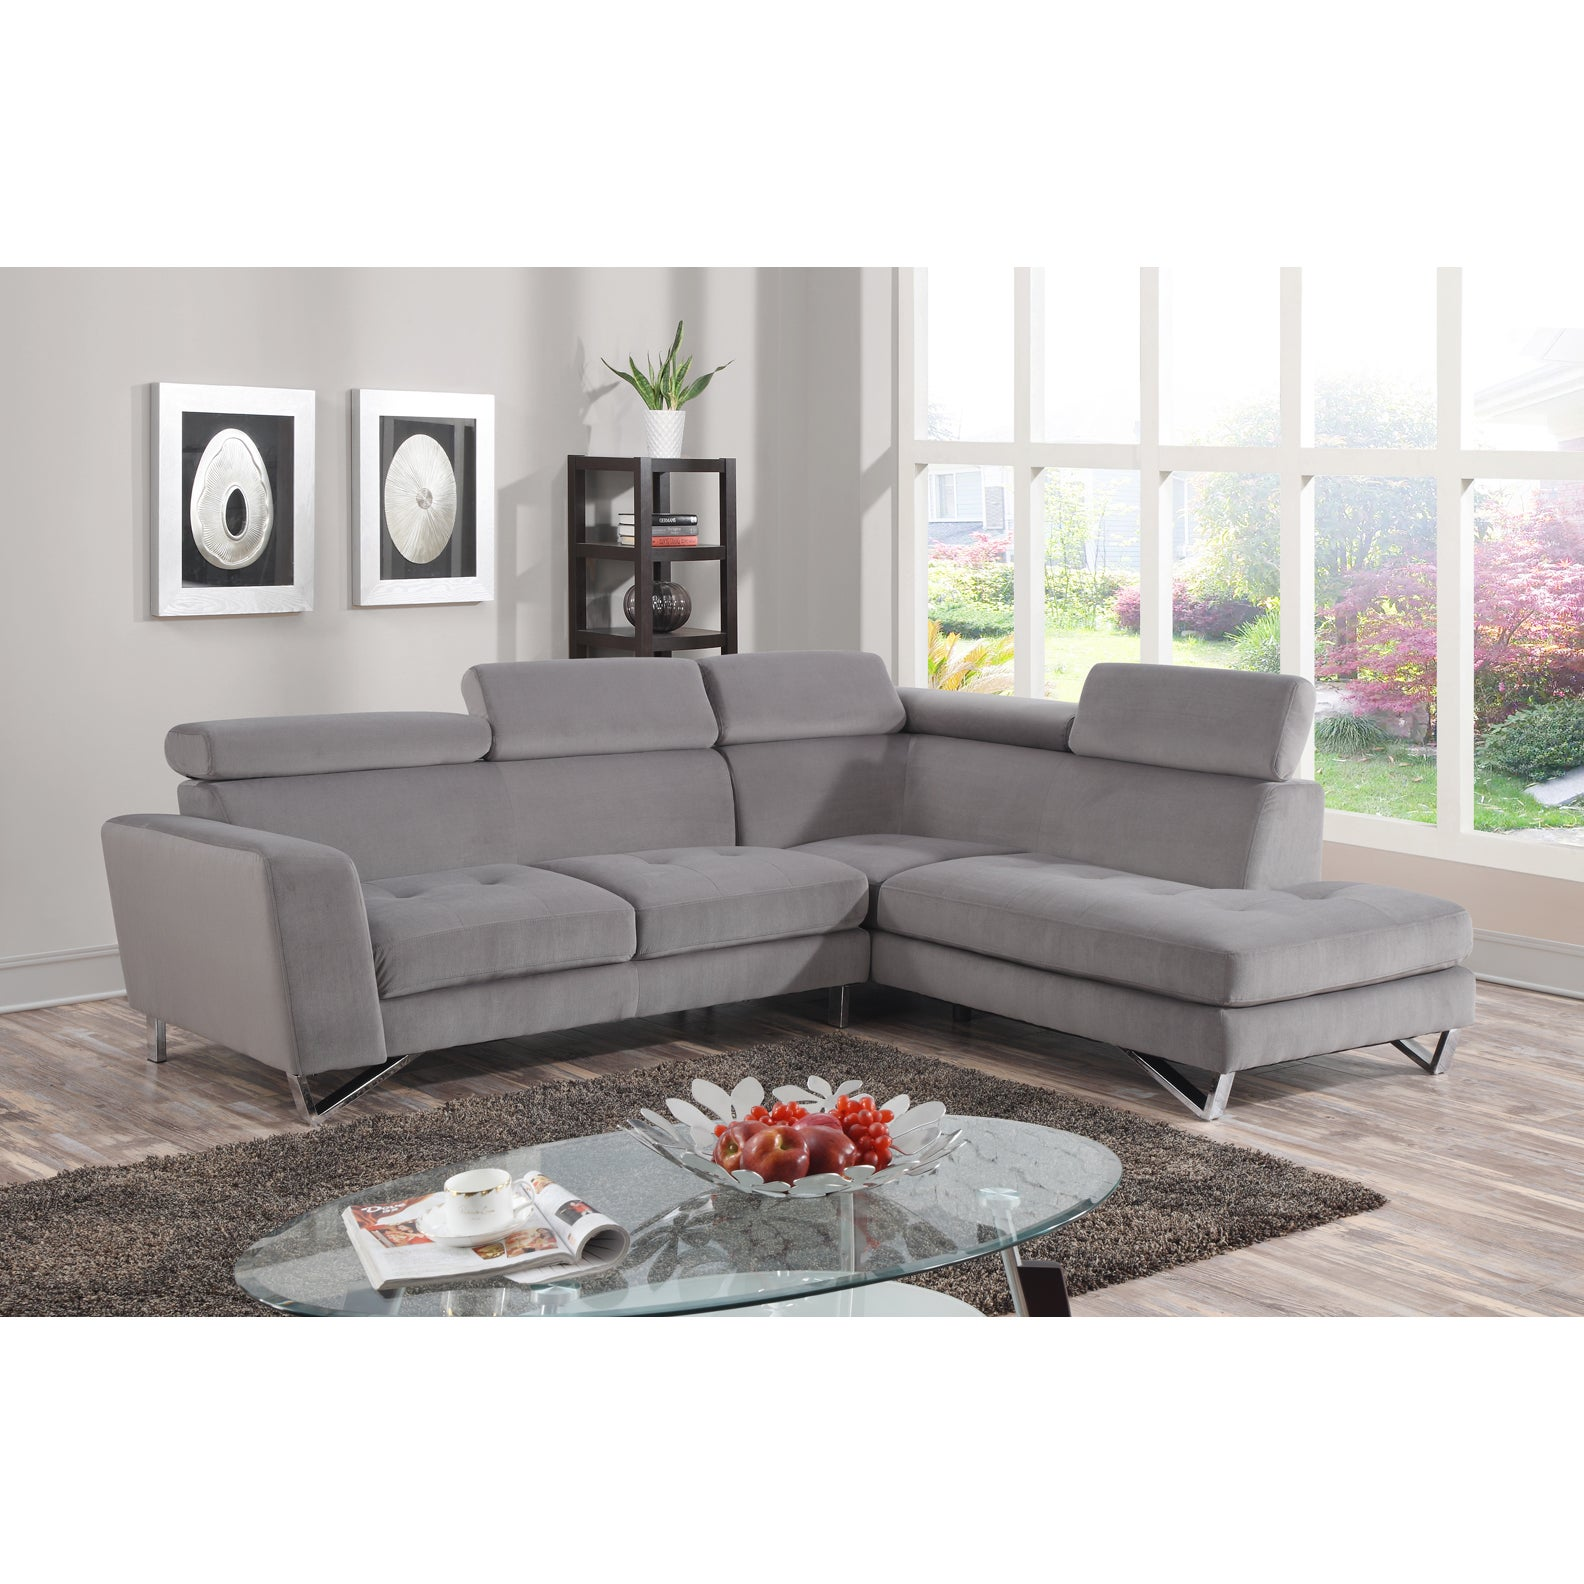 Gray microfiber sectional Sofas